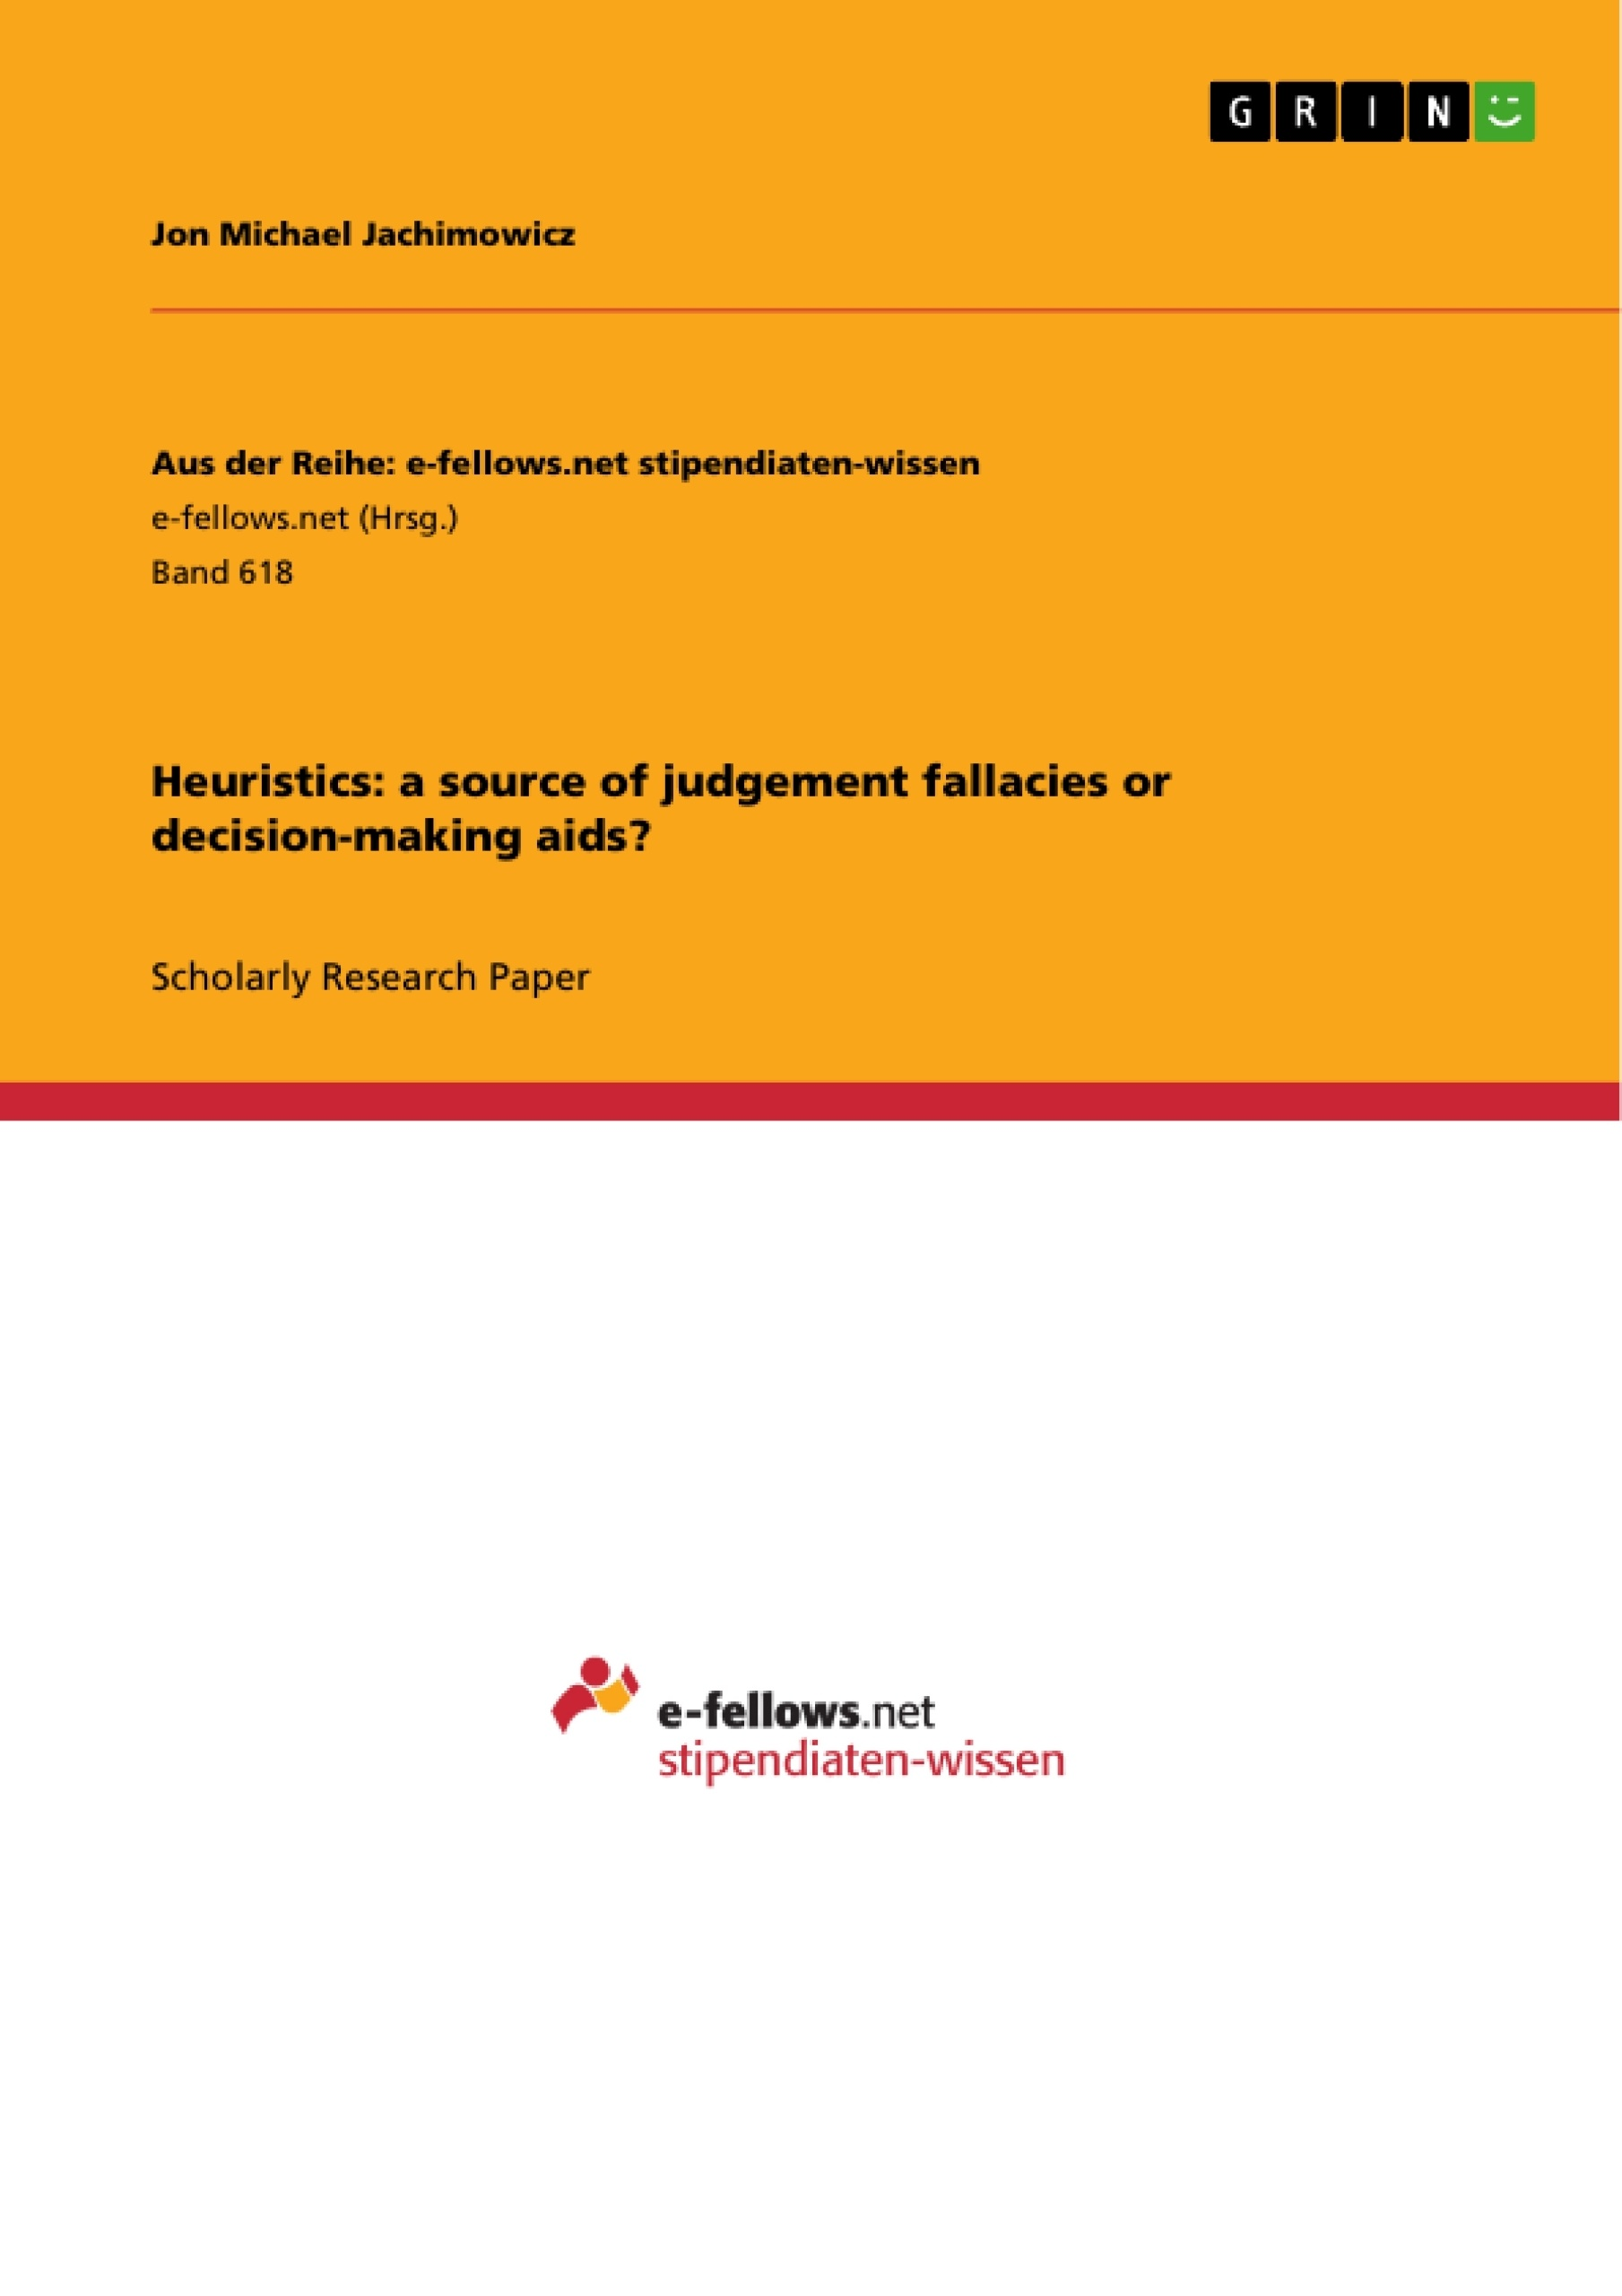 Title: Heuristics: a source of judgement fallacies or decision-making aids?